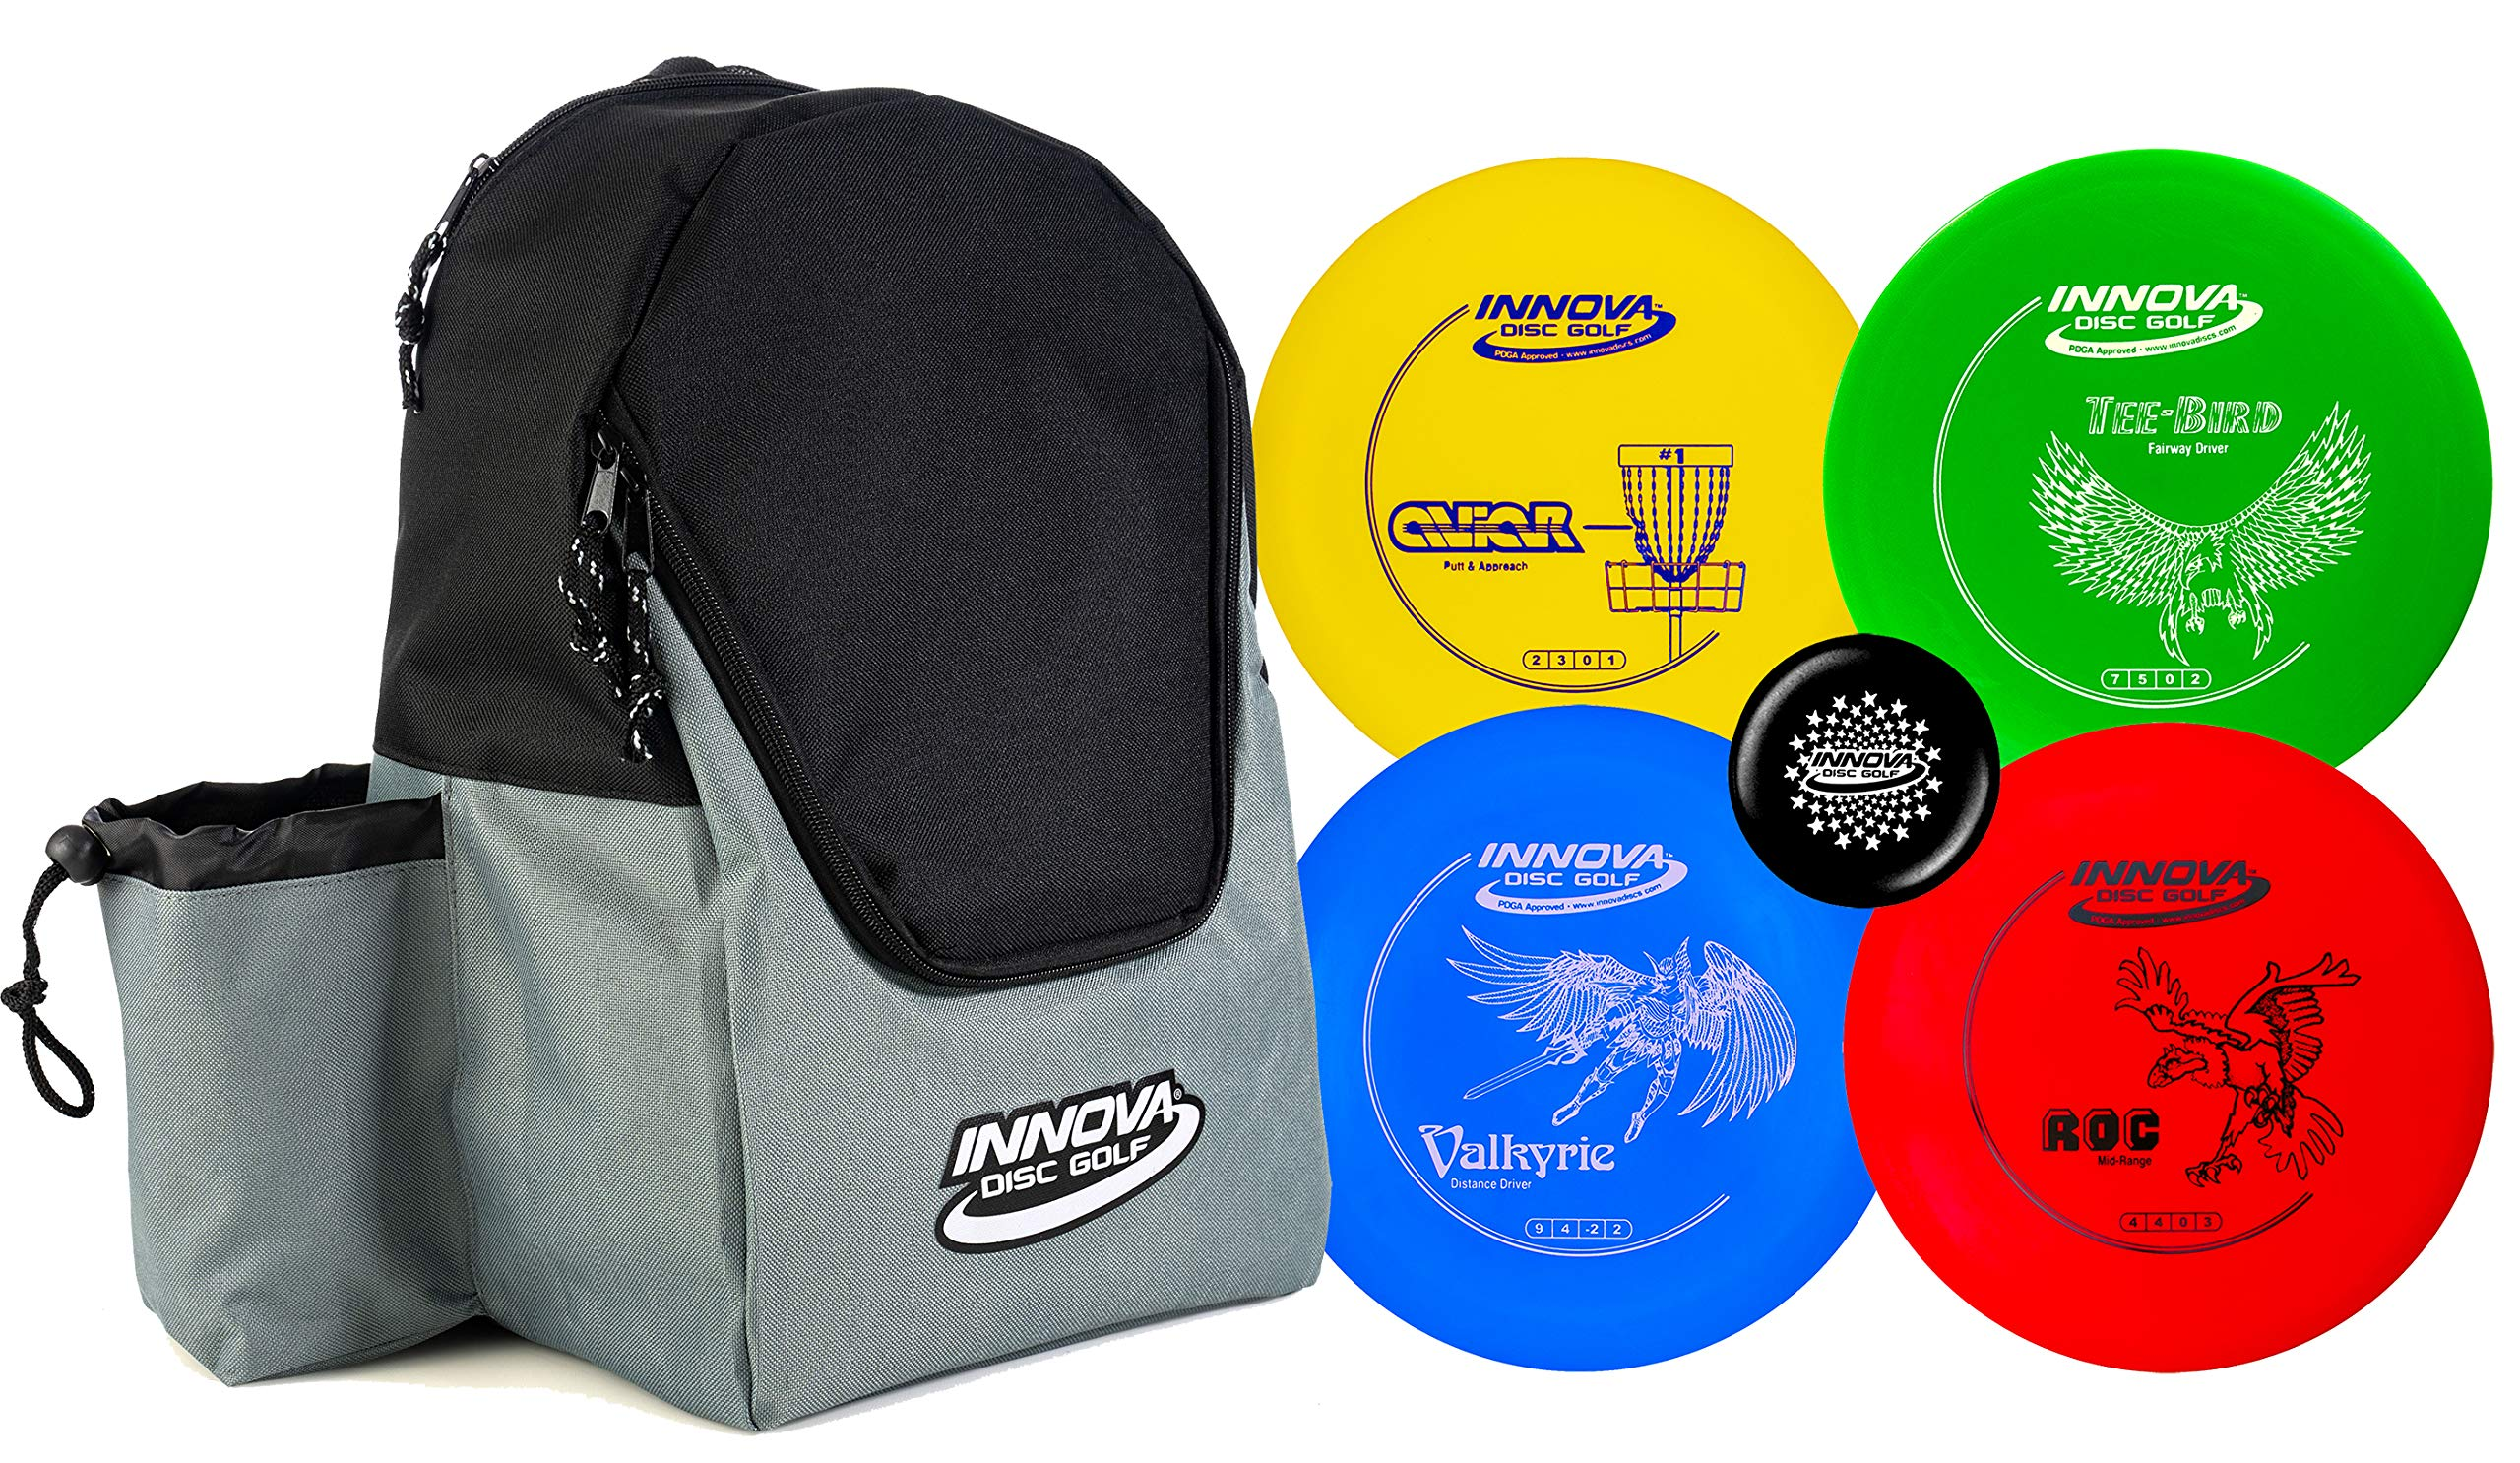 Innova Discs Golf Set with 4 Discs and Discover Disc Golf Backpack - DX Distance Driver, Fairway Driver, Mid-Range, Putter and Mini Marker Disc (Black/Gray) by Innova Discs